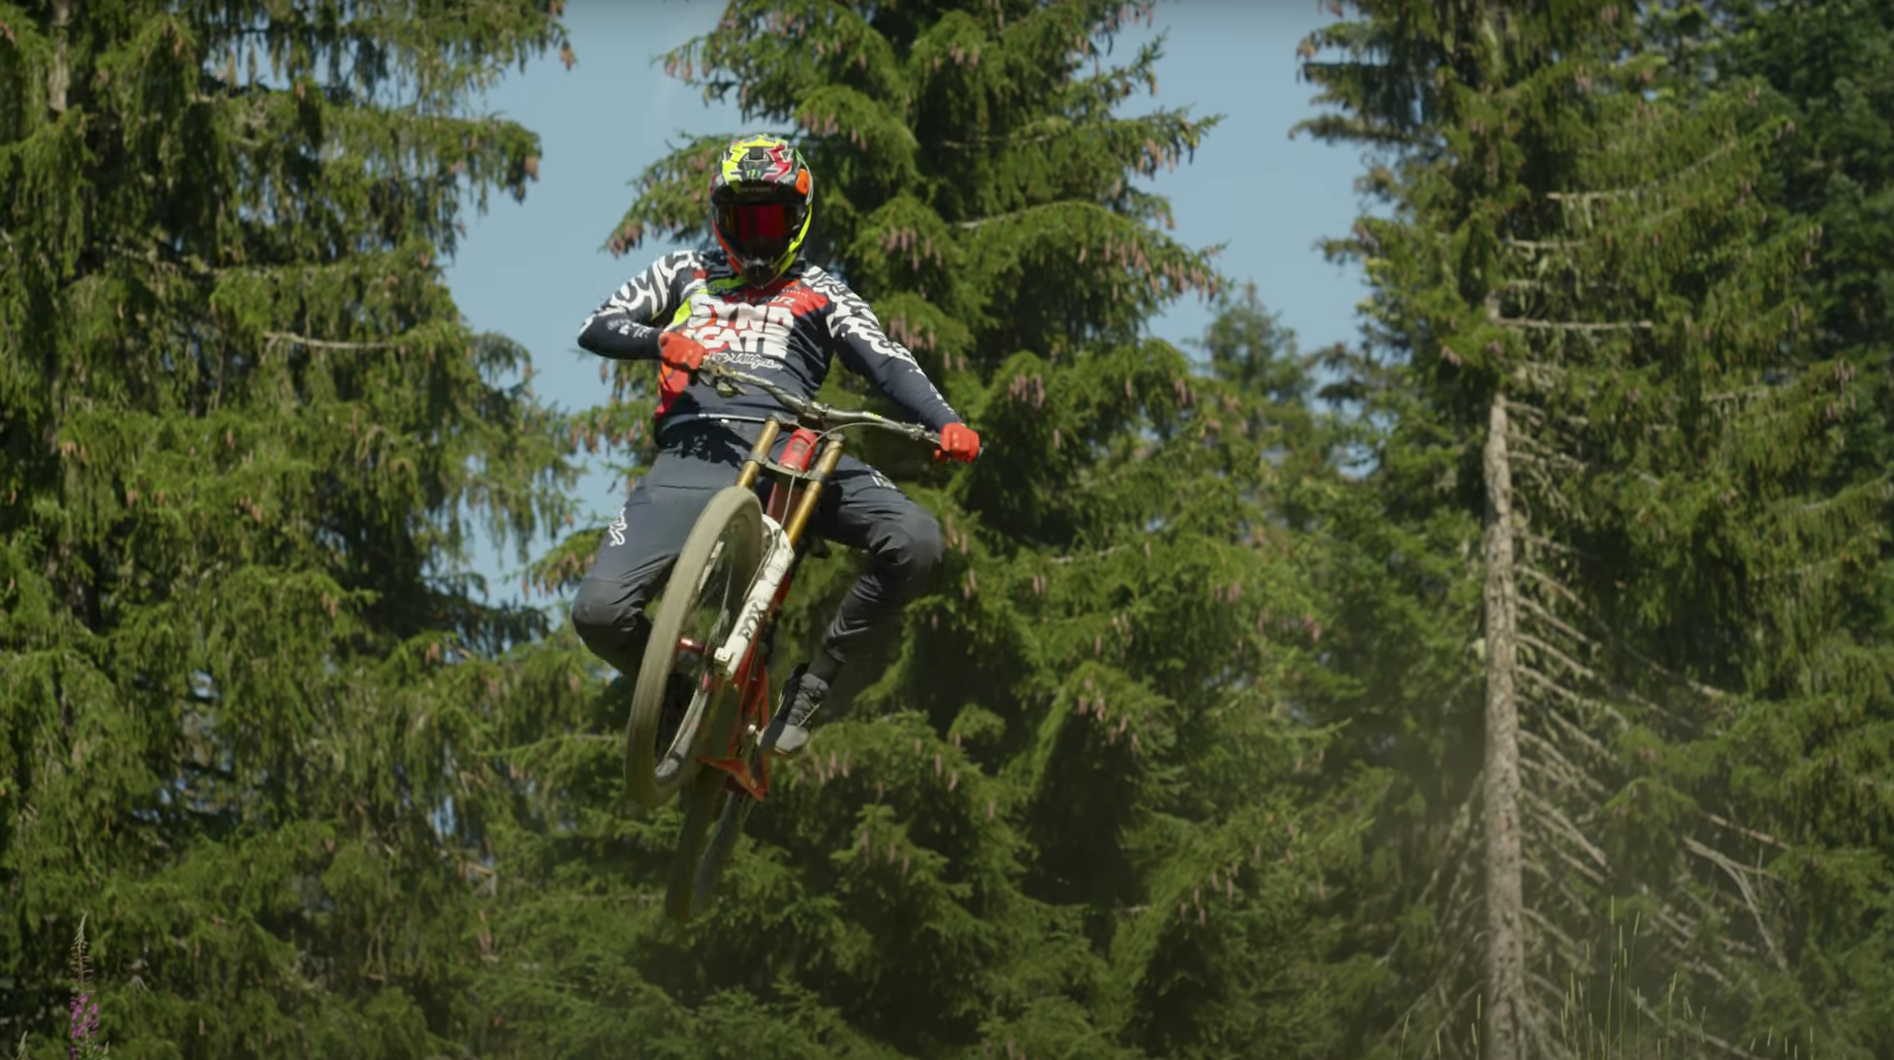 Crank it Up and Let it Rip! All Aboard the Santa Cruz Syndicate Pain Train!